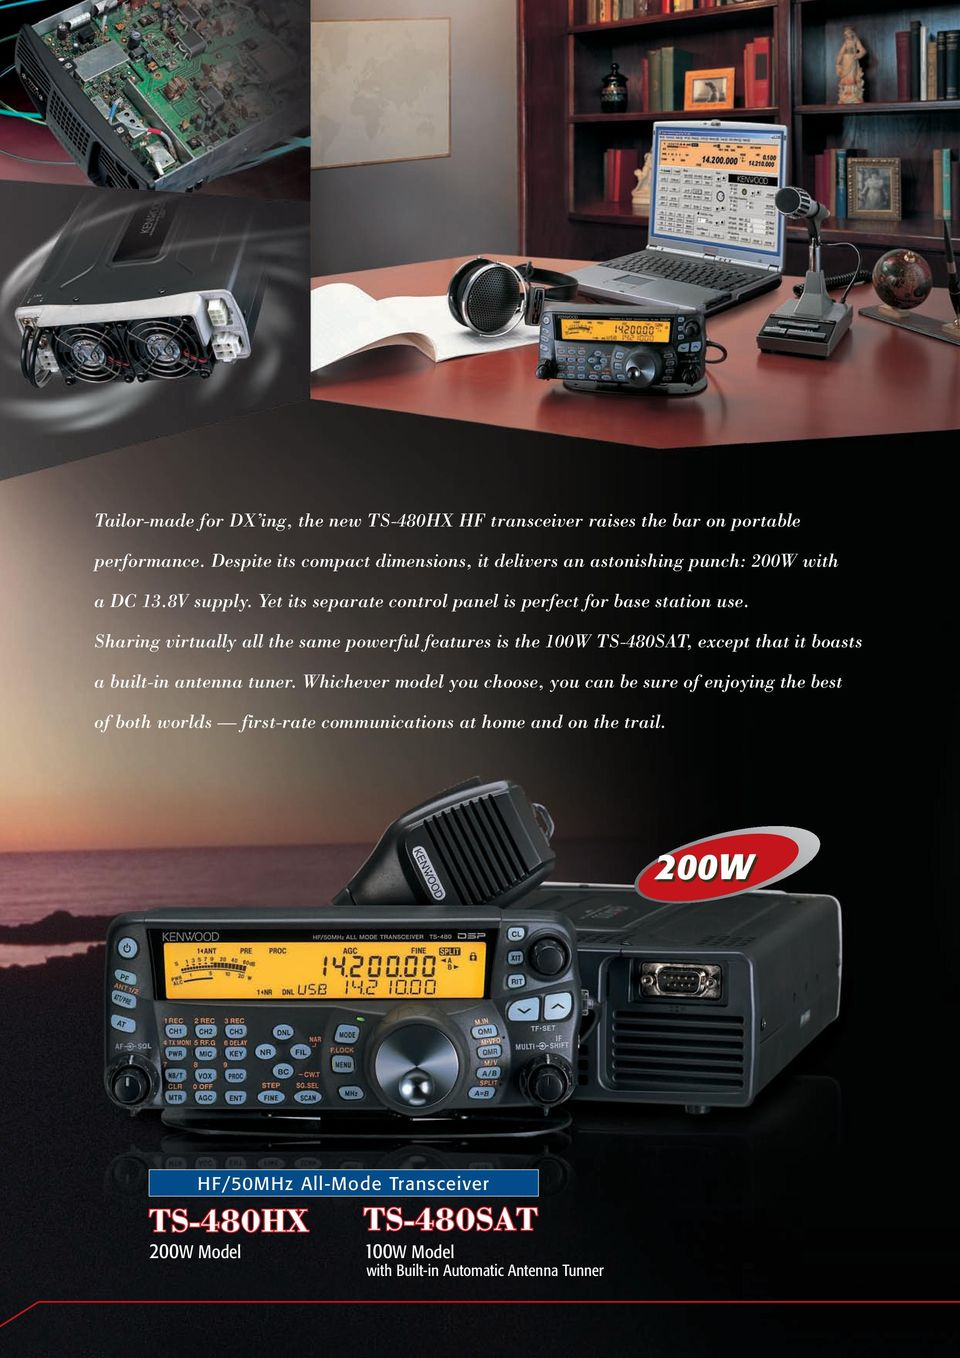 Sharing virtually all the same powerful features is the 100W TS-480SAT, except that it boasts a built-in antenna tuner.